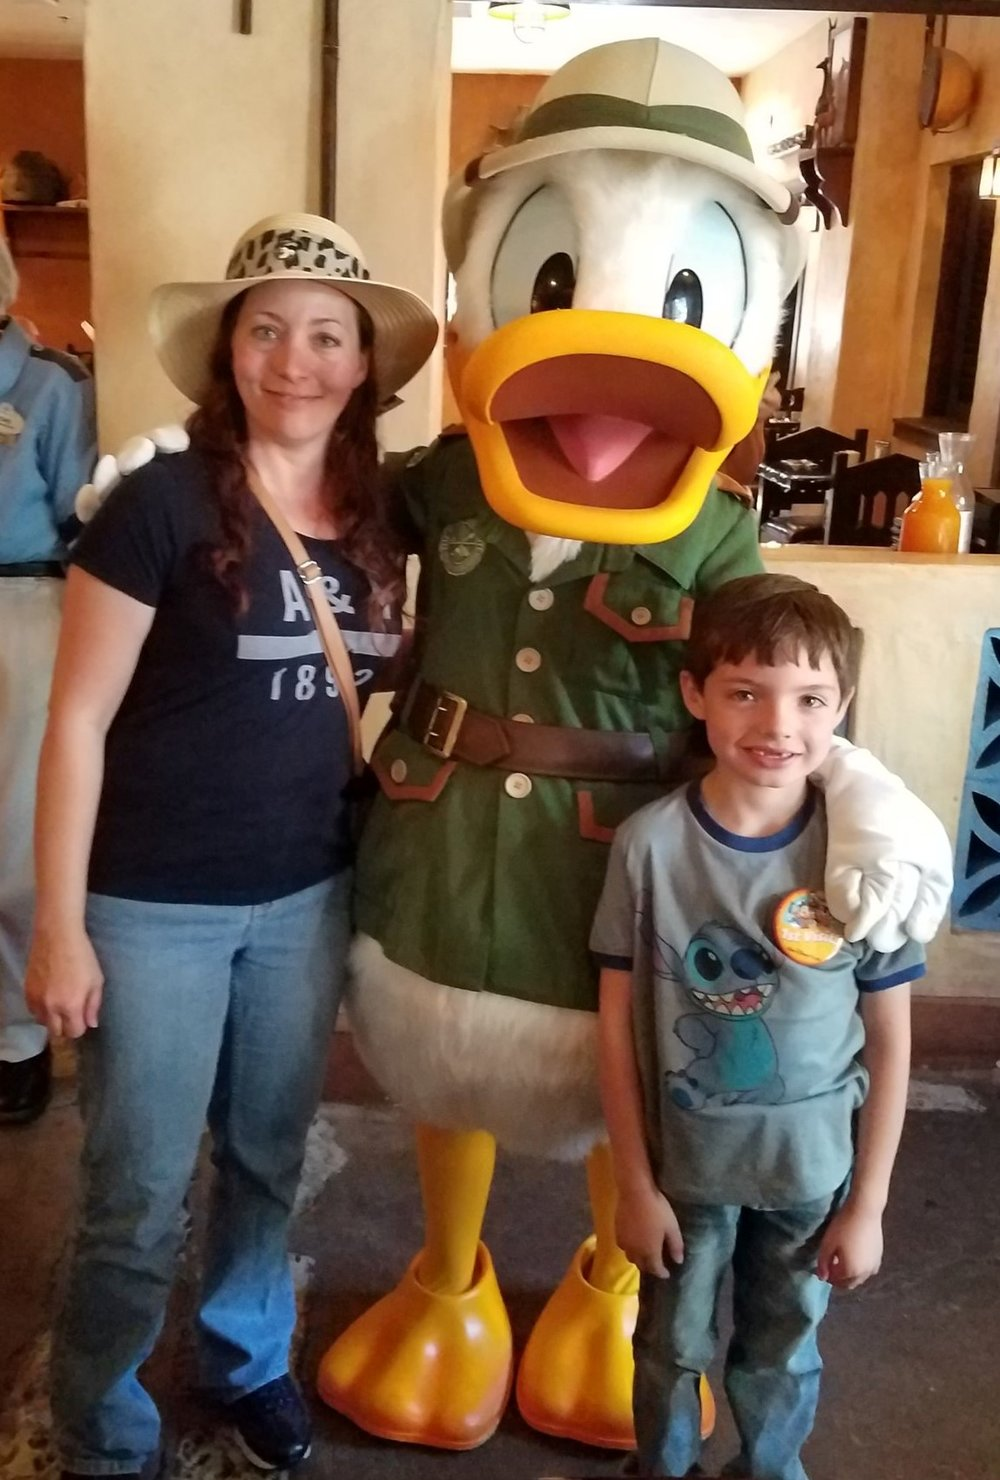 - 1-800-593-1262 Ext 731amy@mainstreettravelco.comAmy Hulette is new to the travel industry. After 15 years as an accountant in Georgia, she has found a new dream job......a personal Travel Planner!She loves to travel and loves all things Disney. She first visited Disney World's Magic Kingdom for Senior Night in 1995. Ever since then, she has been to Disney World at least 10 times, and falls in love with Disney magic each time she visits. In 2013, she was able to bring her son and mother for their first ever visit to Disney World. It was a magical experience for them all.All of her vacations to Disney have been memorable and magical experiences that keep her wanting to come back again and again. As a personal travel planner, she hopes to help create these same memories and experiences for you and your family.